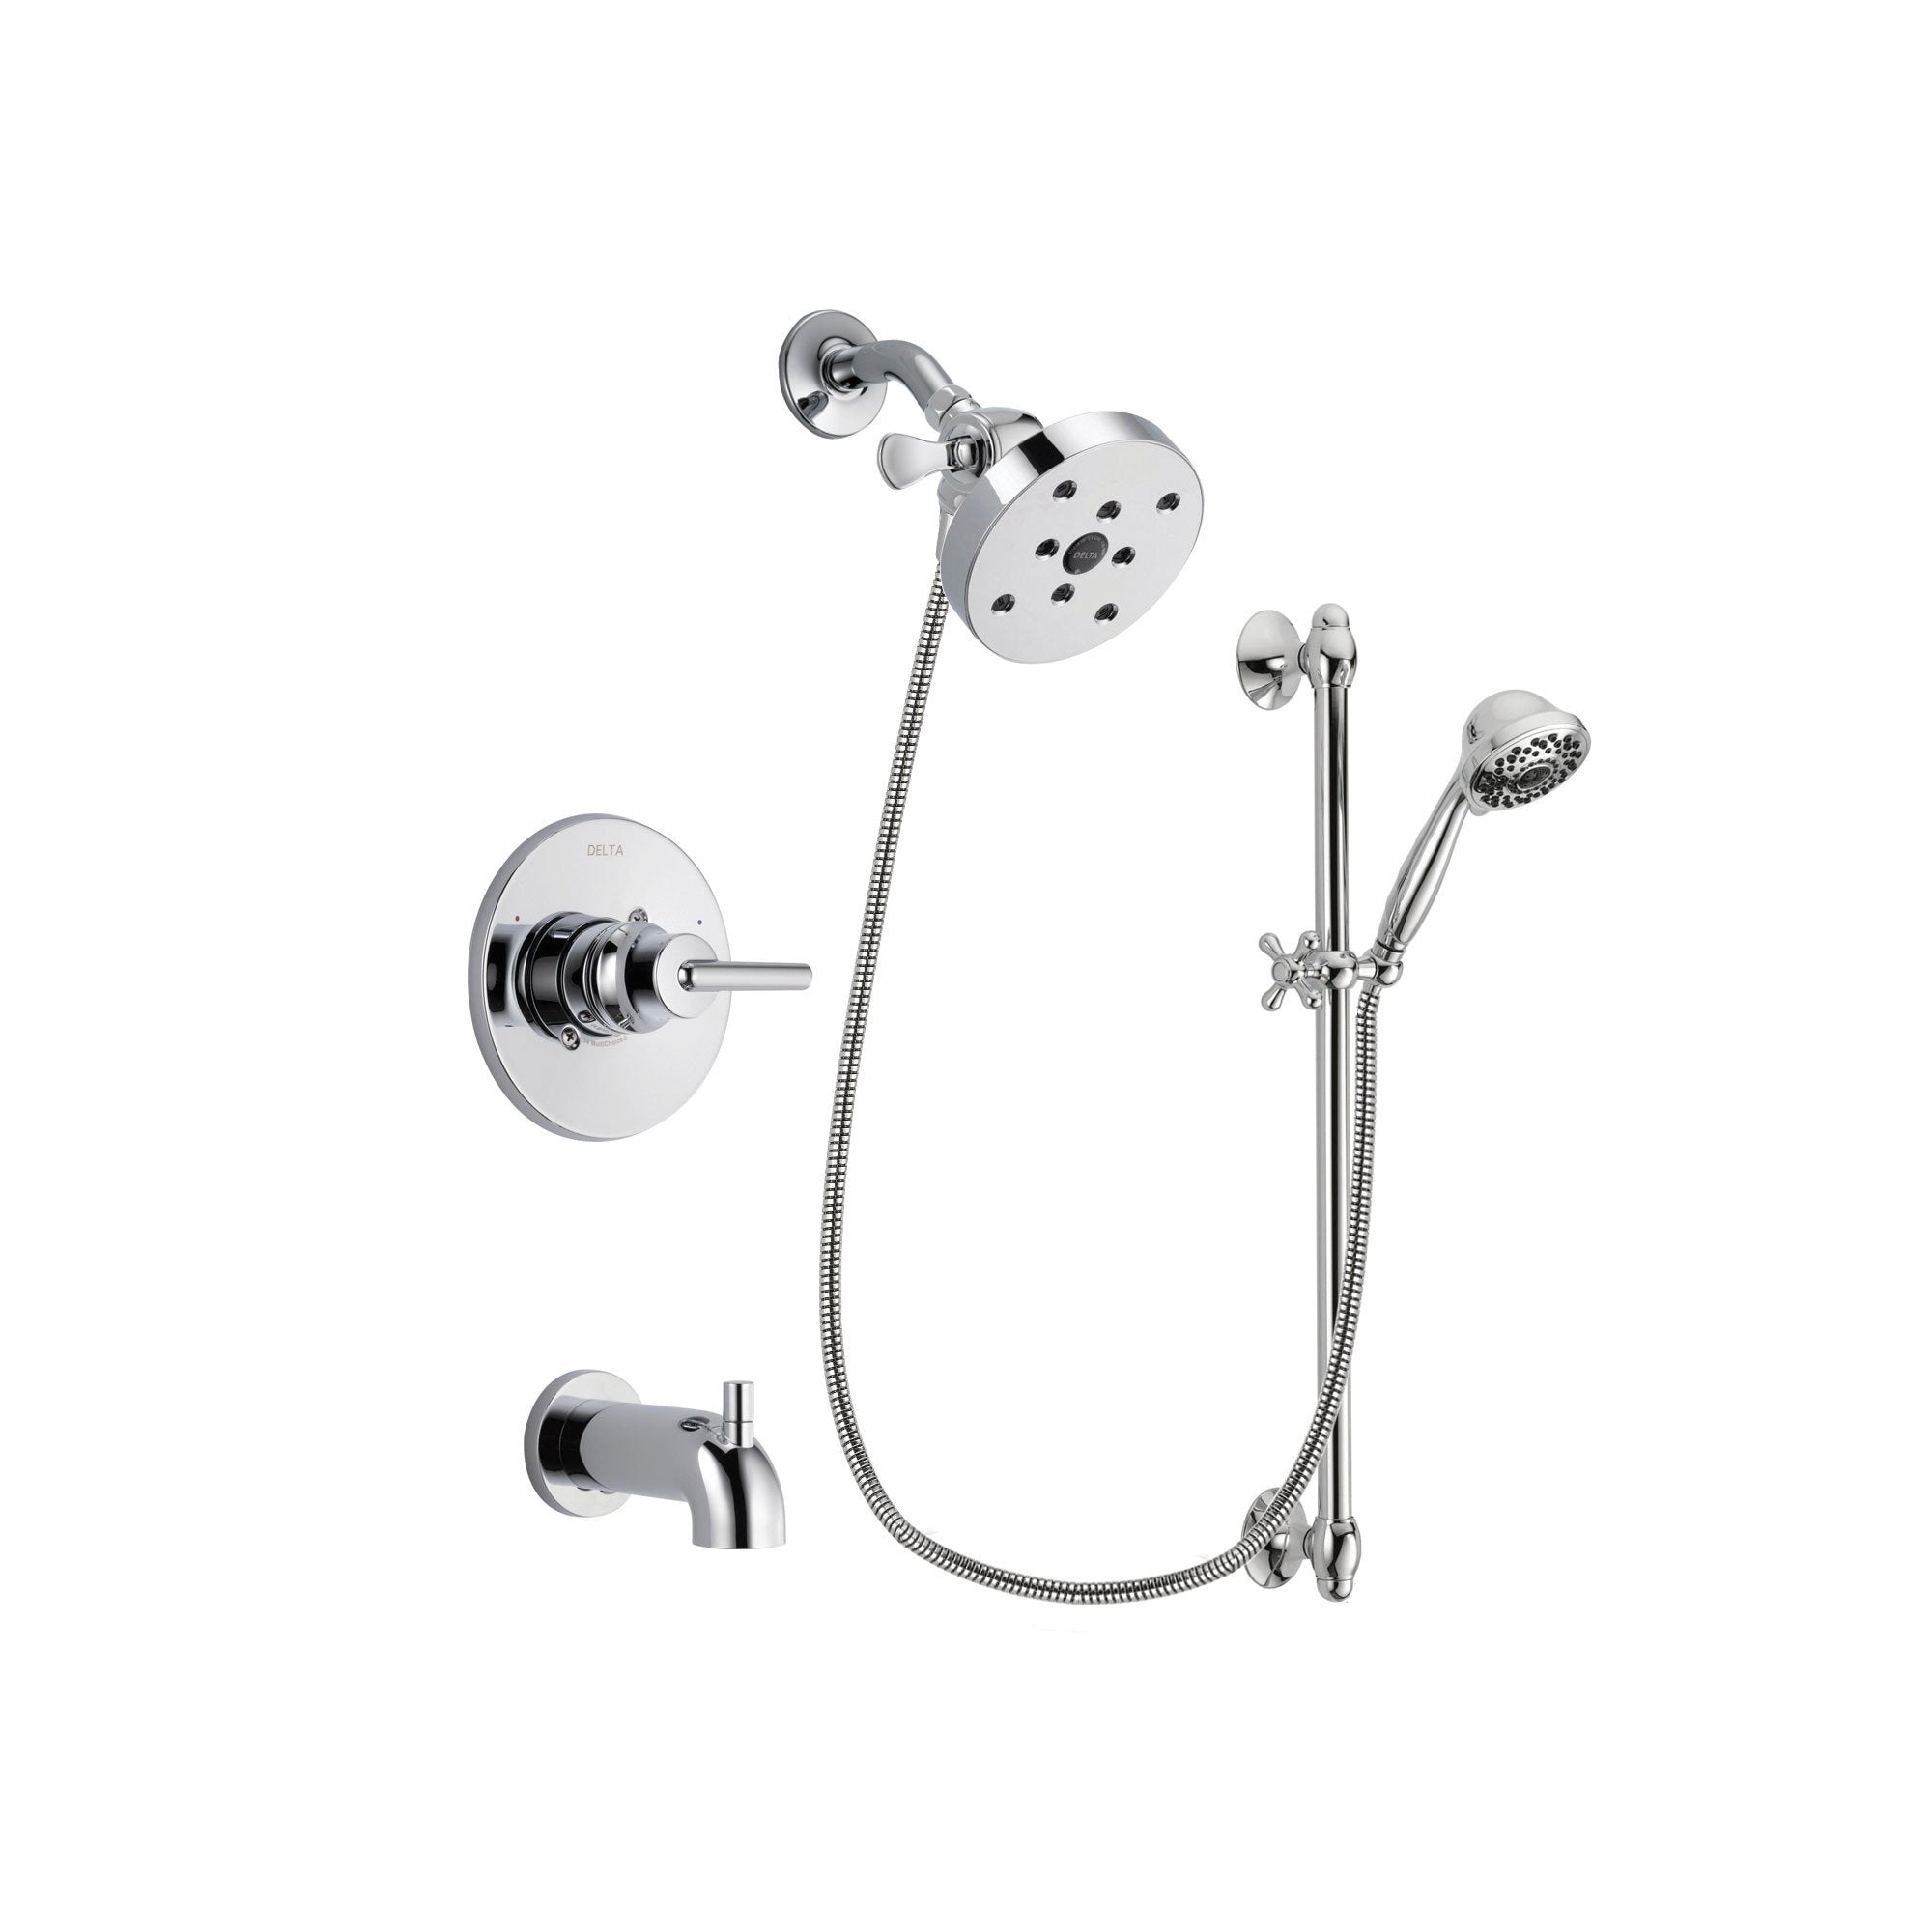 Delta Trinsic Chrome Tub and Shower Faucet System with Hand Shower DSP0675V